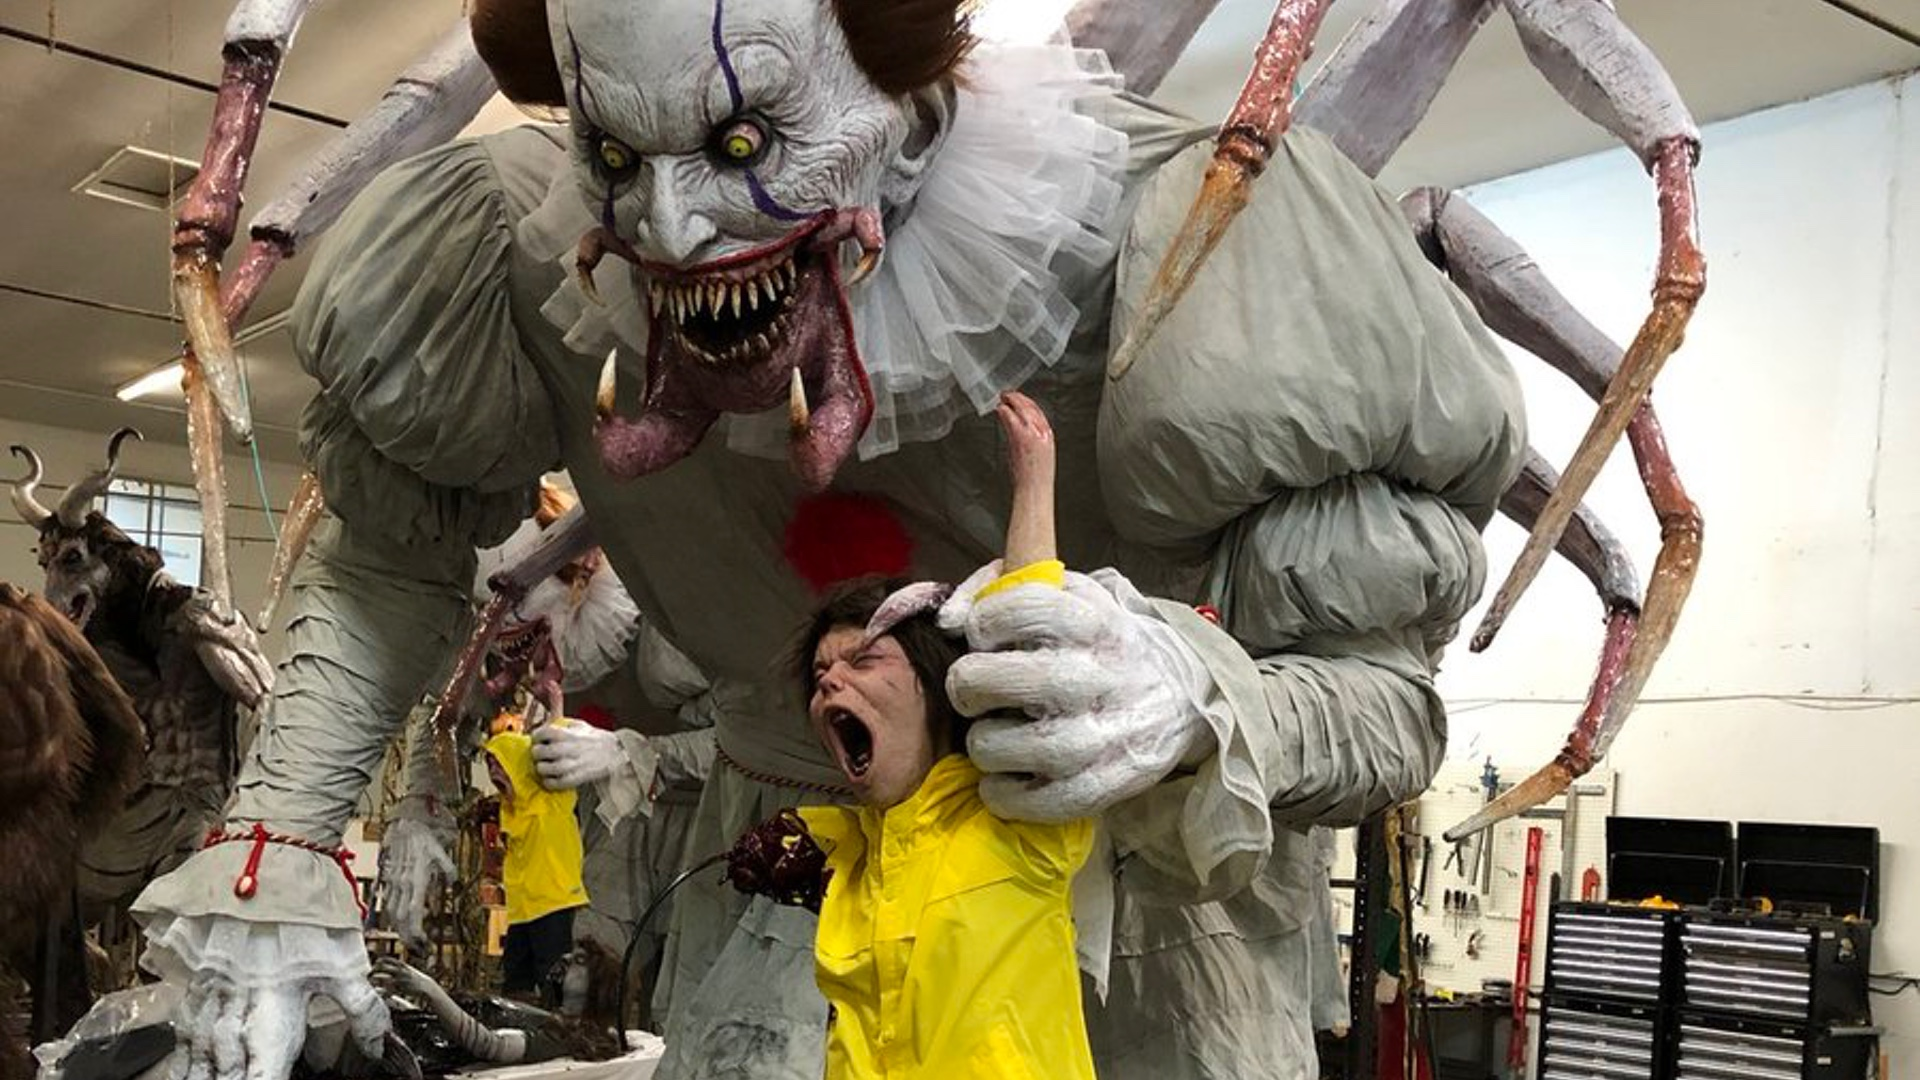 this-pennywise-the-clown-halloween-animatronic-prop-is-what-terrifying-nightmares-are-made-of-social.jpg